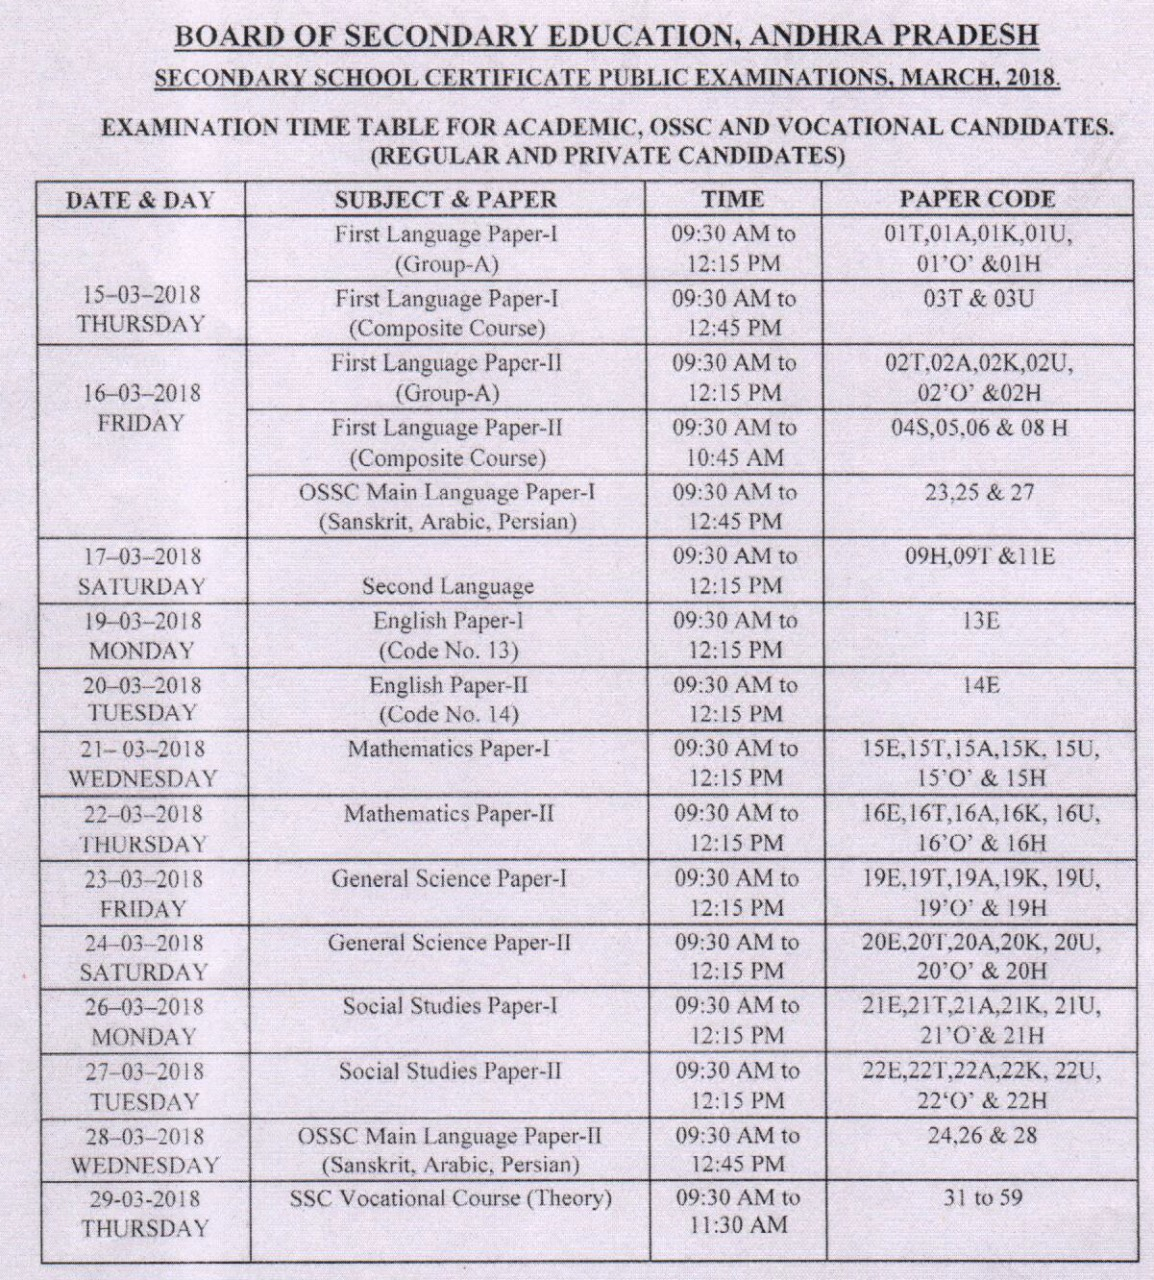 ap ssc Time table, ap ssc Time table 2018